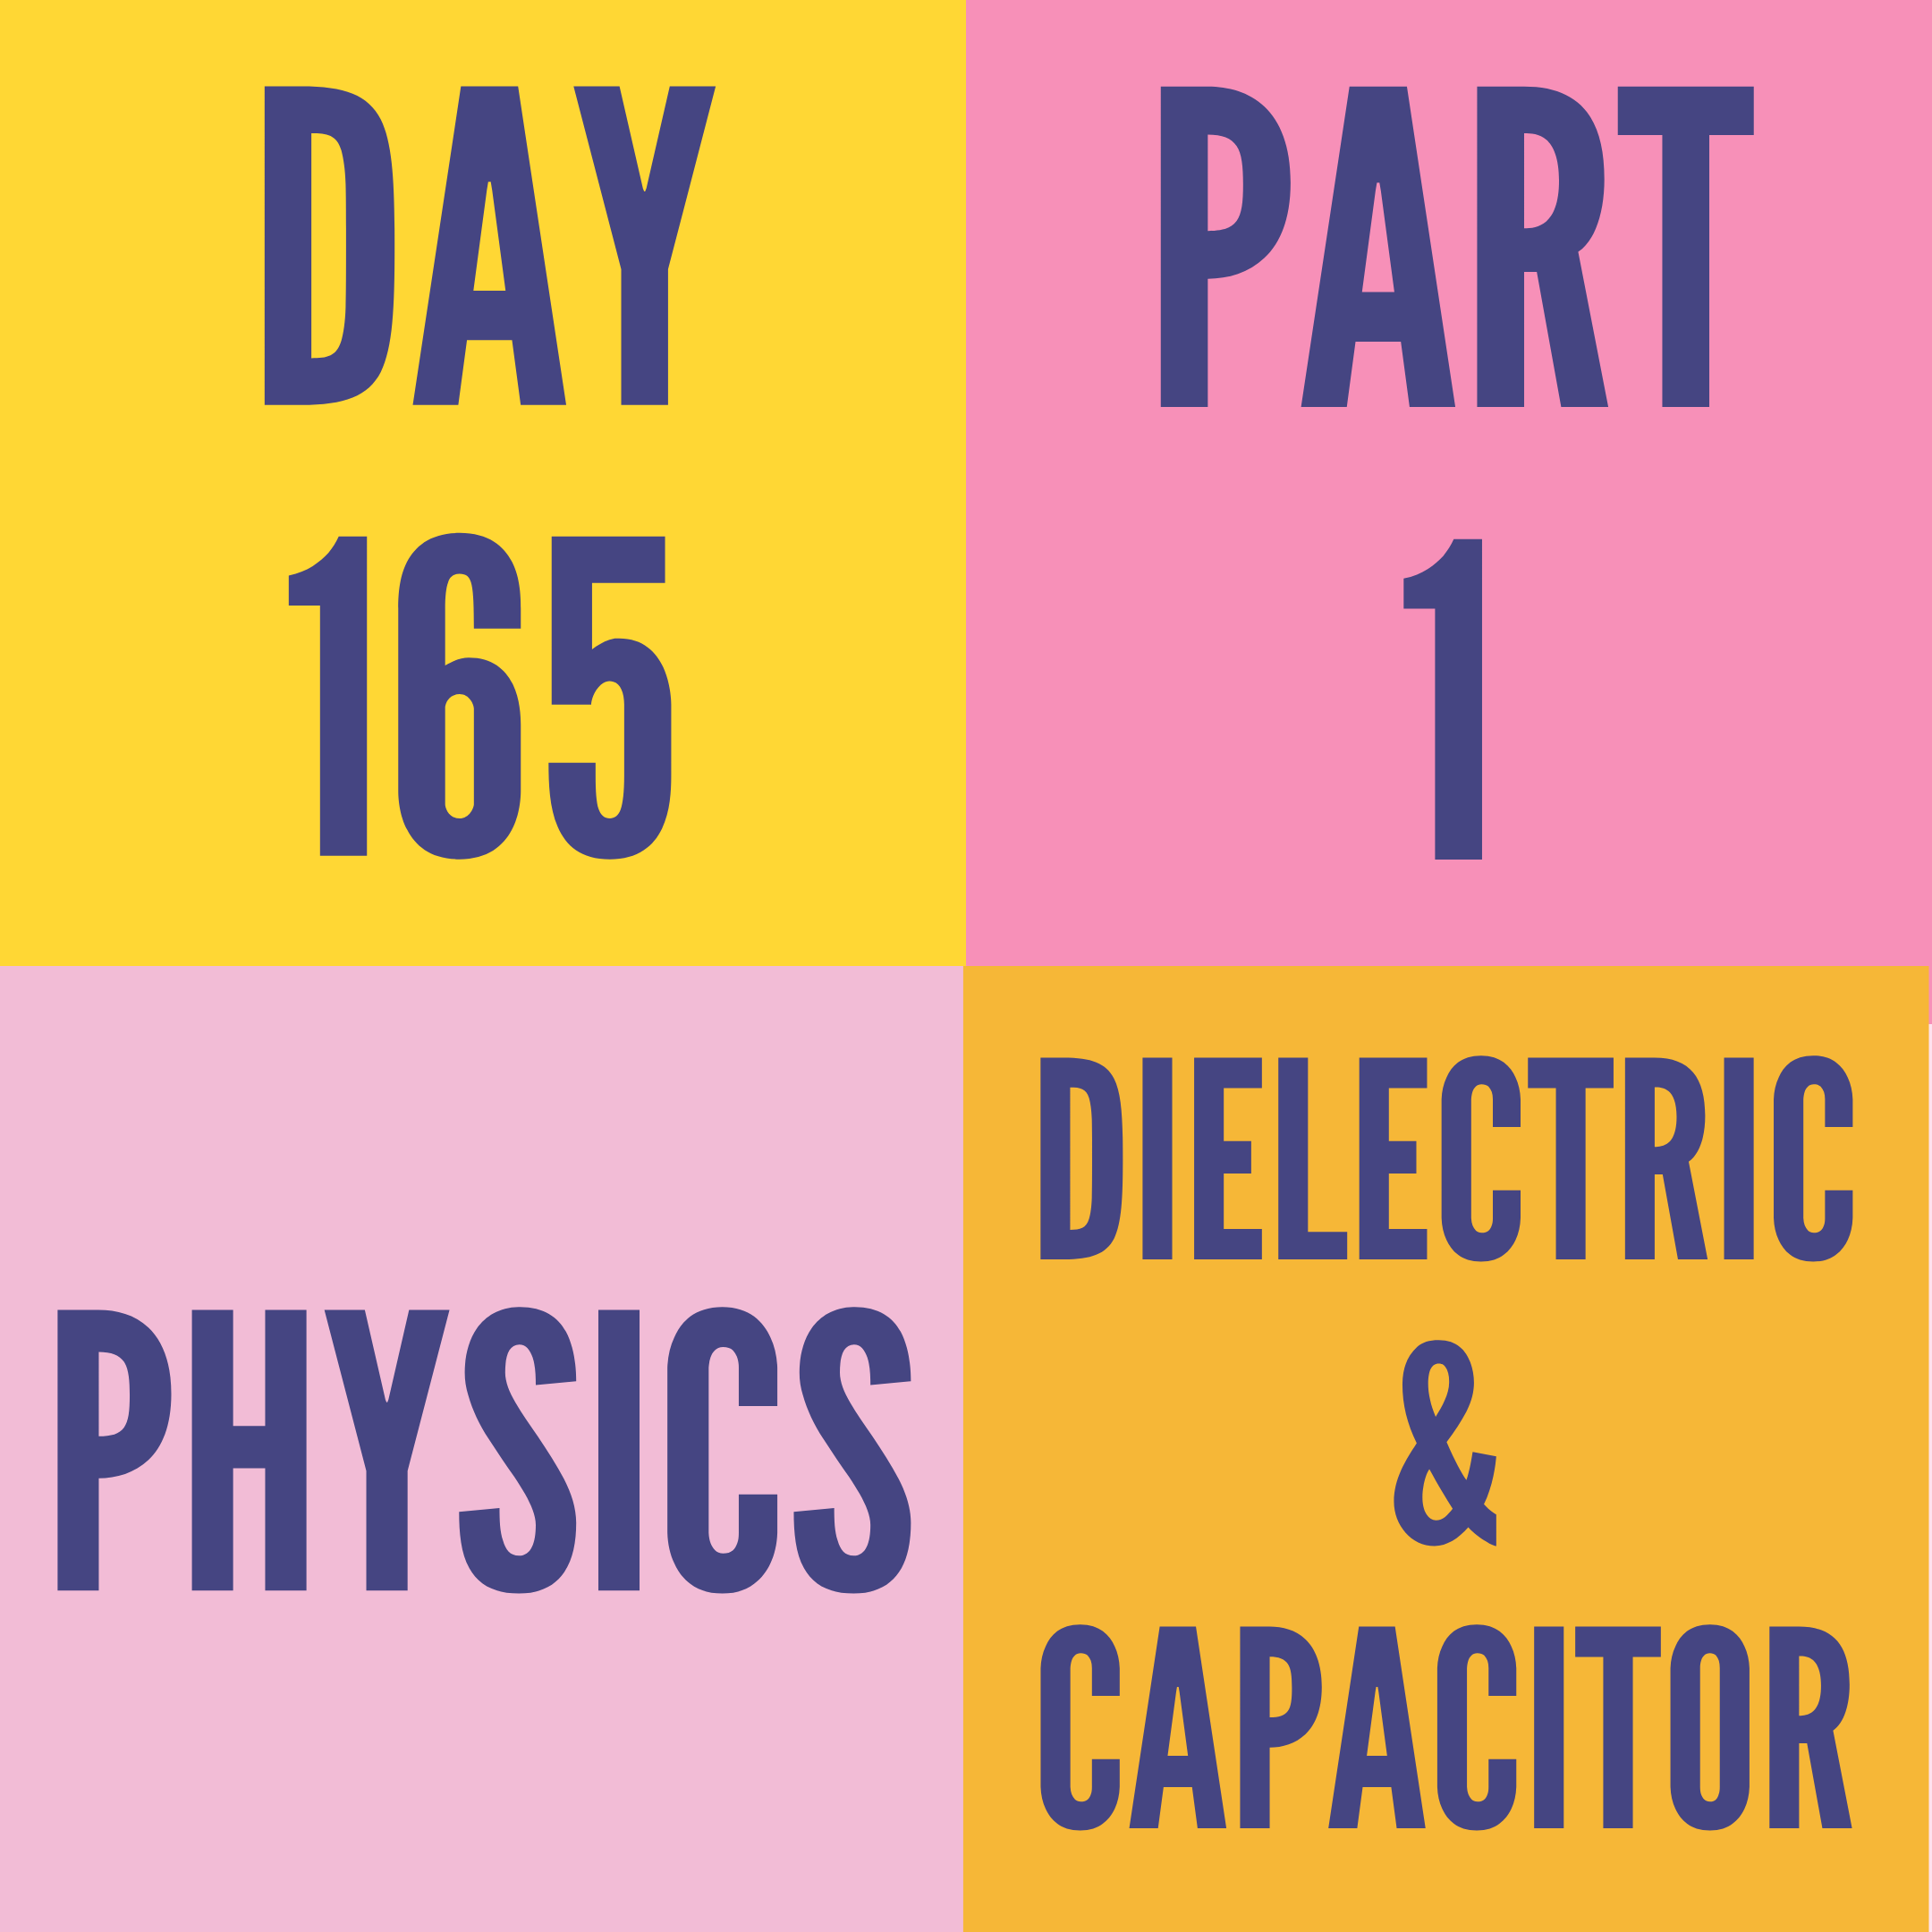 DAY-165 PART-1 DIELECTRIC & CAPACITOR